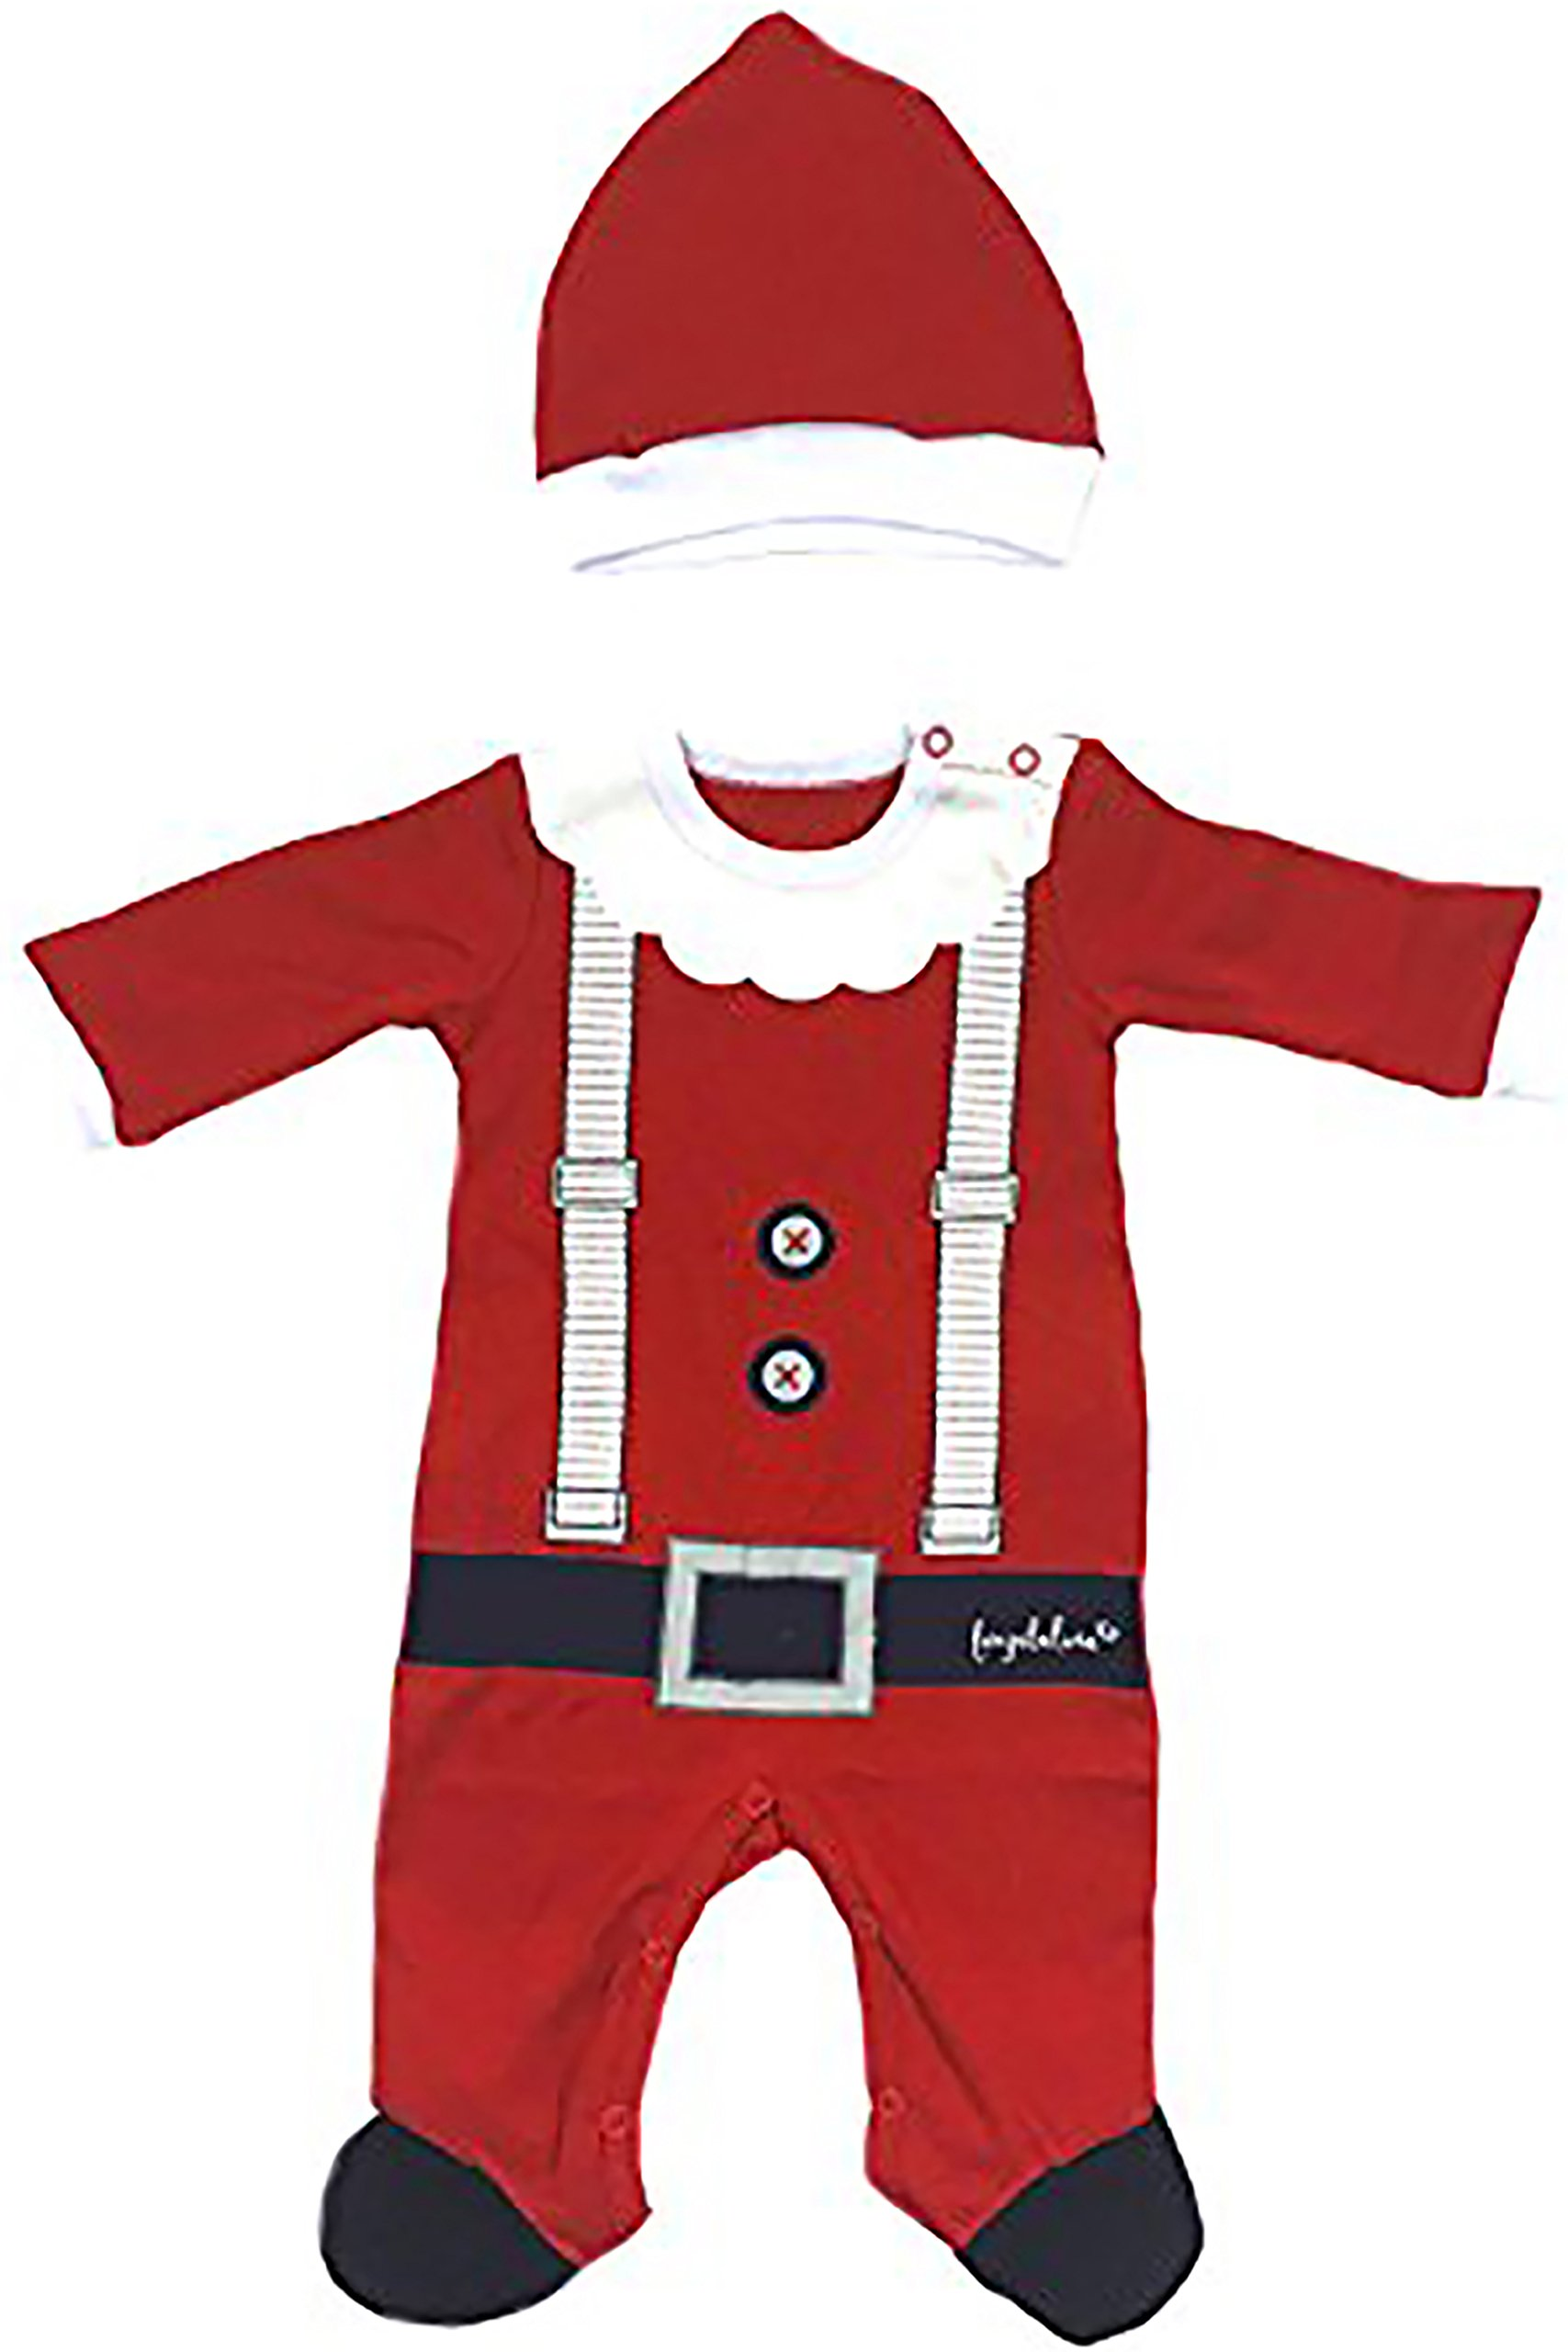 Fayfaire Christmas Pajamas Boutique Quality: Adorable Xmas Santa Suit with Hat 6-12M by Fayfaire